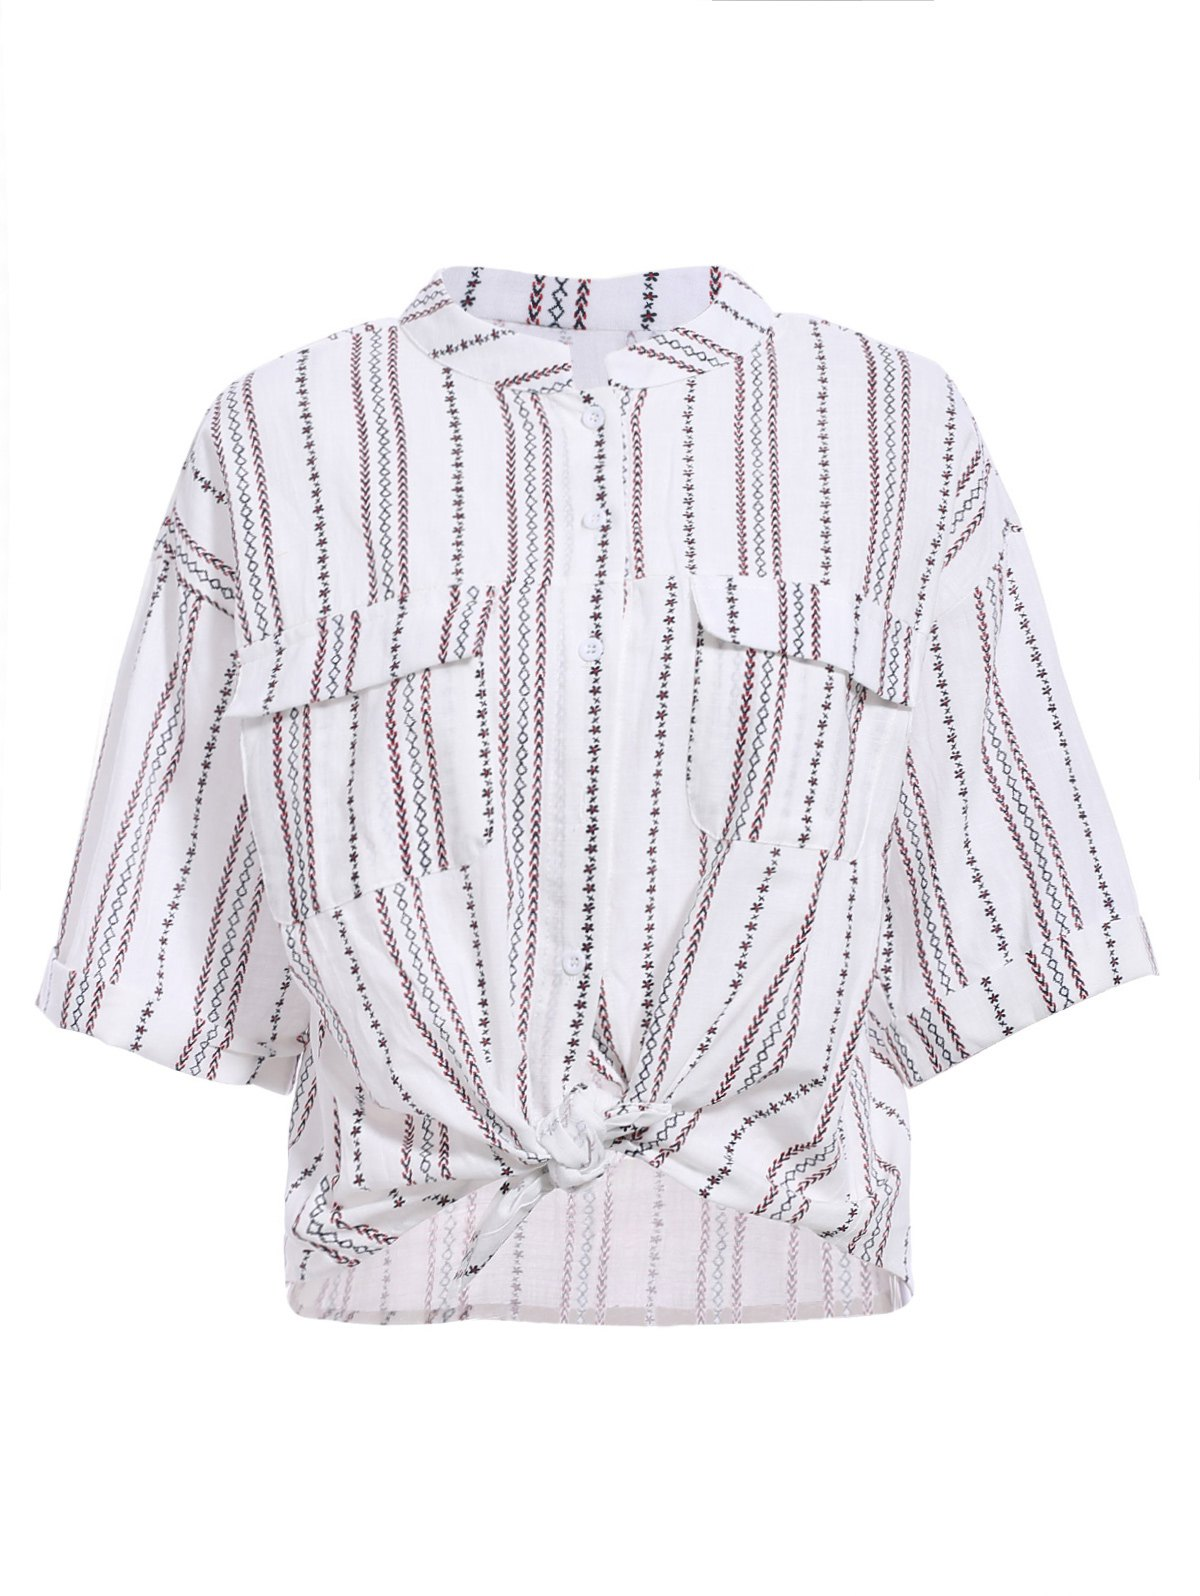 Elegant Women's Stand-Up Collar Striped Design Embroidered Print Shirt